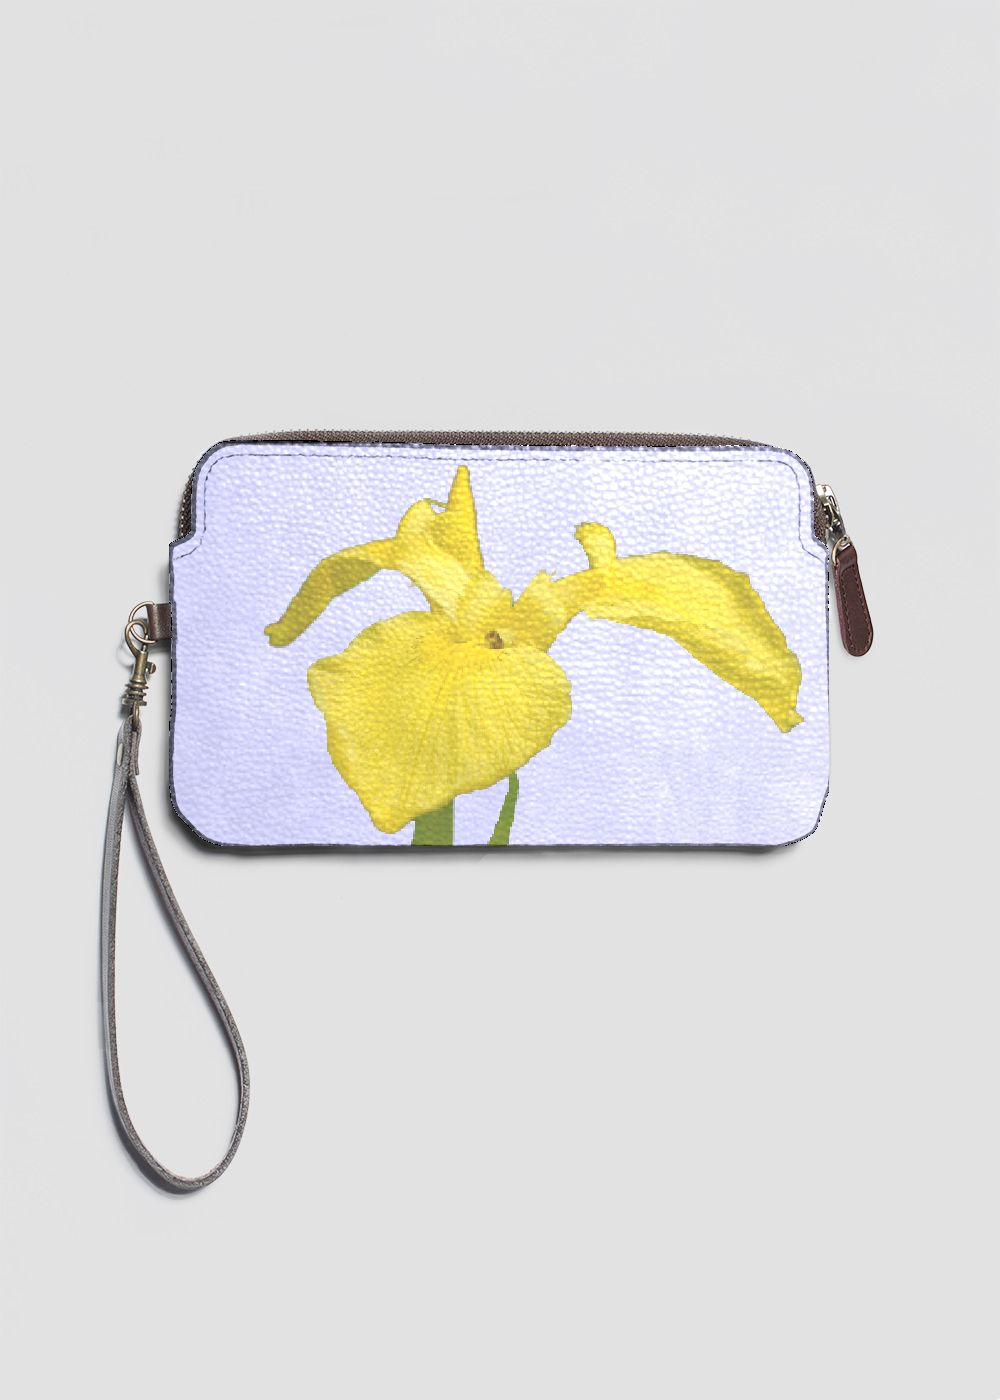 ed5af2180114 Yellow Iris Leather Clutch Bag. Accent your outfit with our chic custom  printed Leather Statement Clutch featuring a top zip closure and removable  wristlet ...